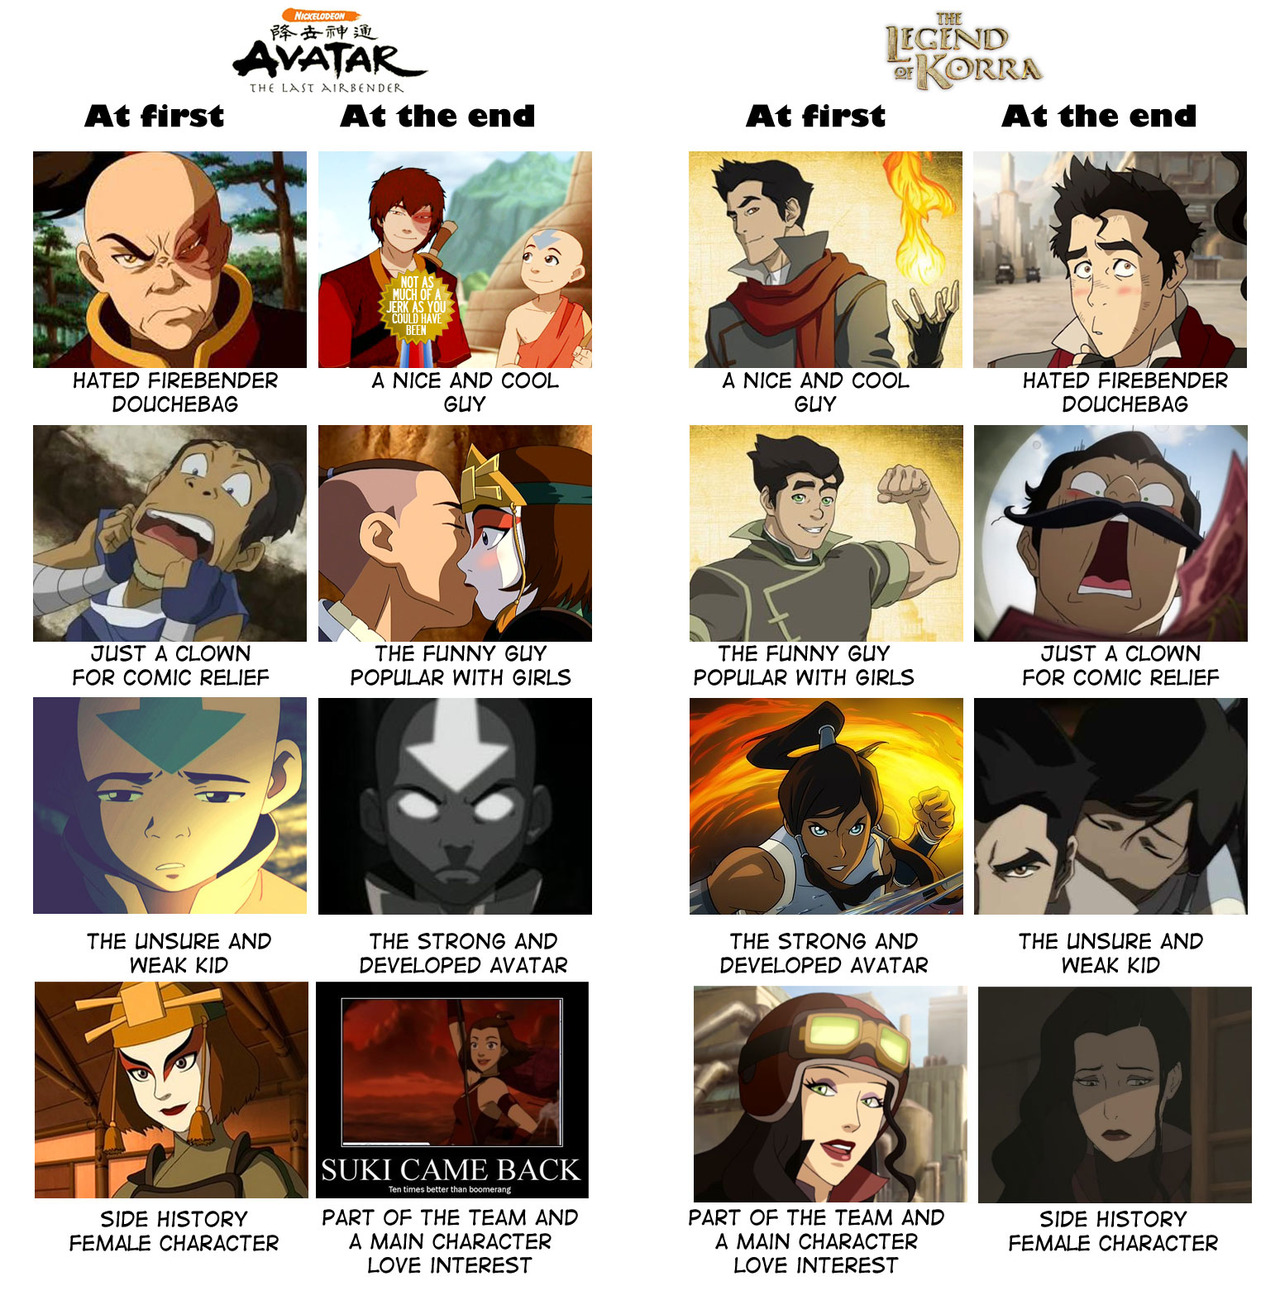 Avatar: The Last Airbender / The Legend of Korra - Image #349,642